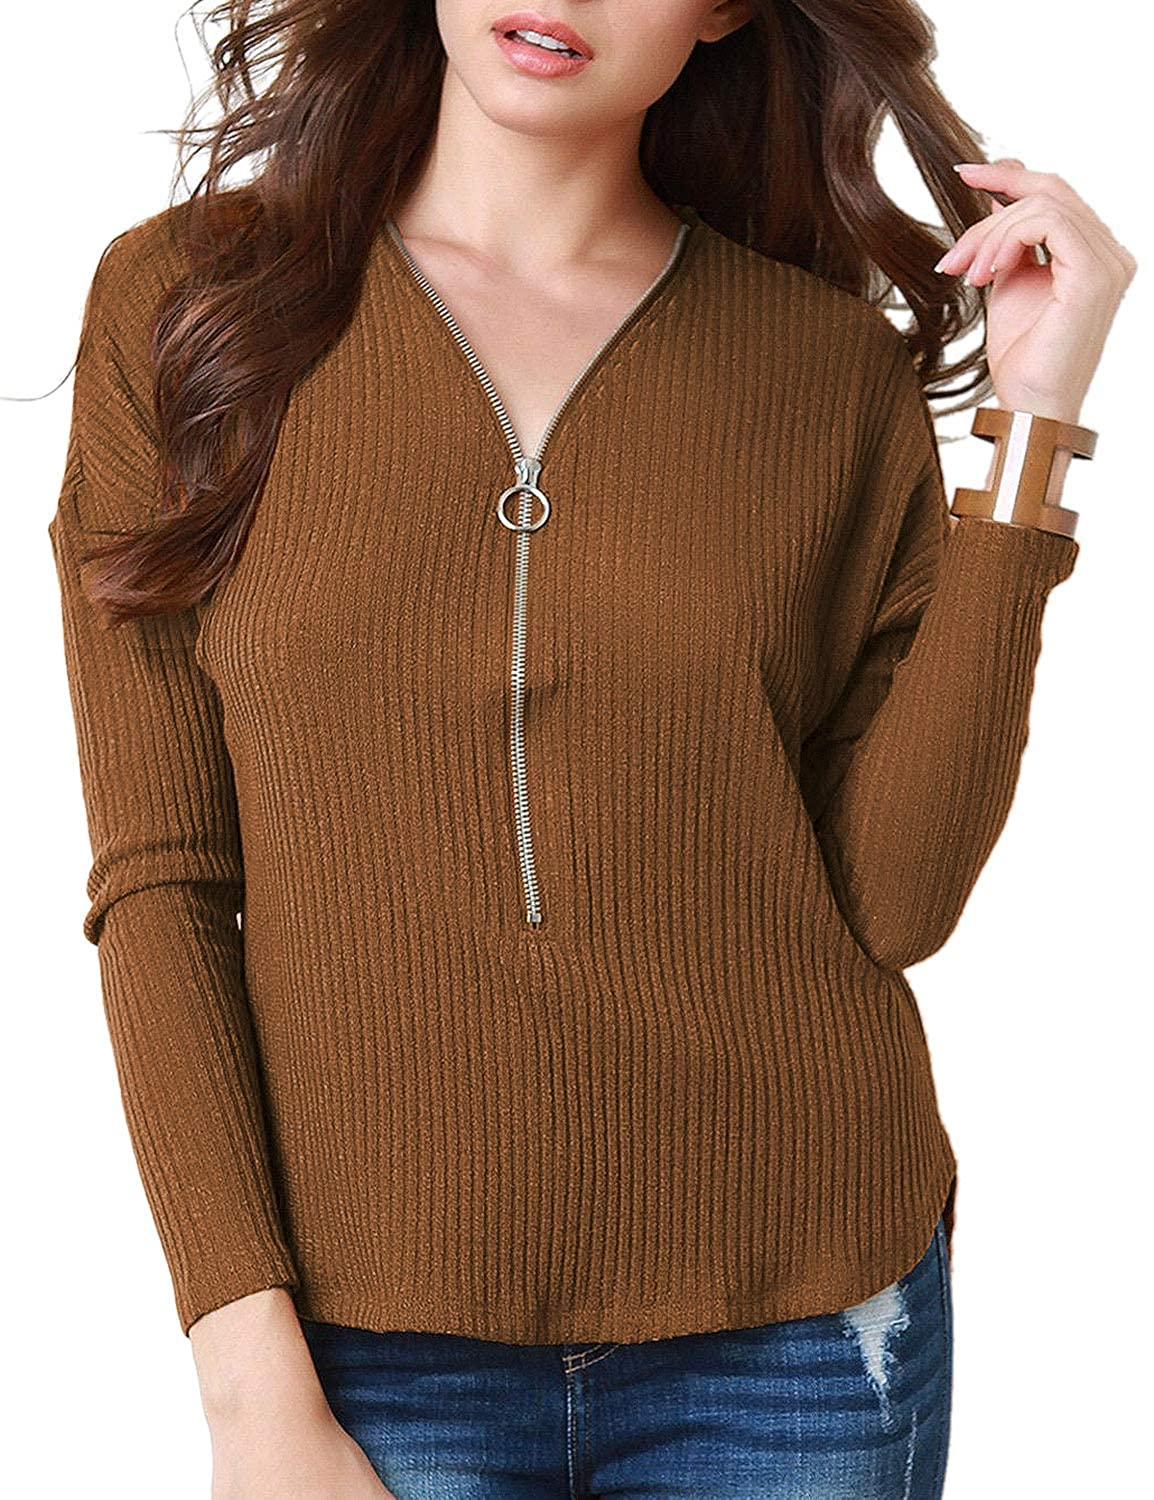 Utyful Women Casual Zipper V Neck Ribbed Knit Long Sleeves Pullover Tops Shirts UT-UT25135C-TO